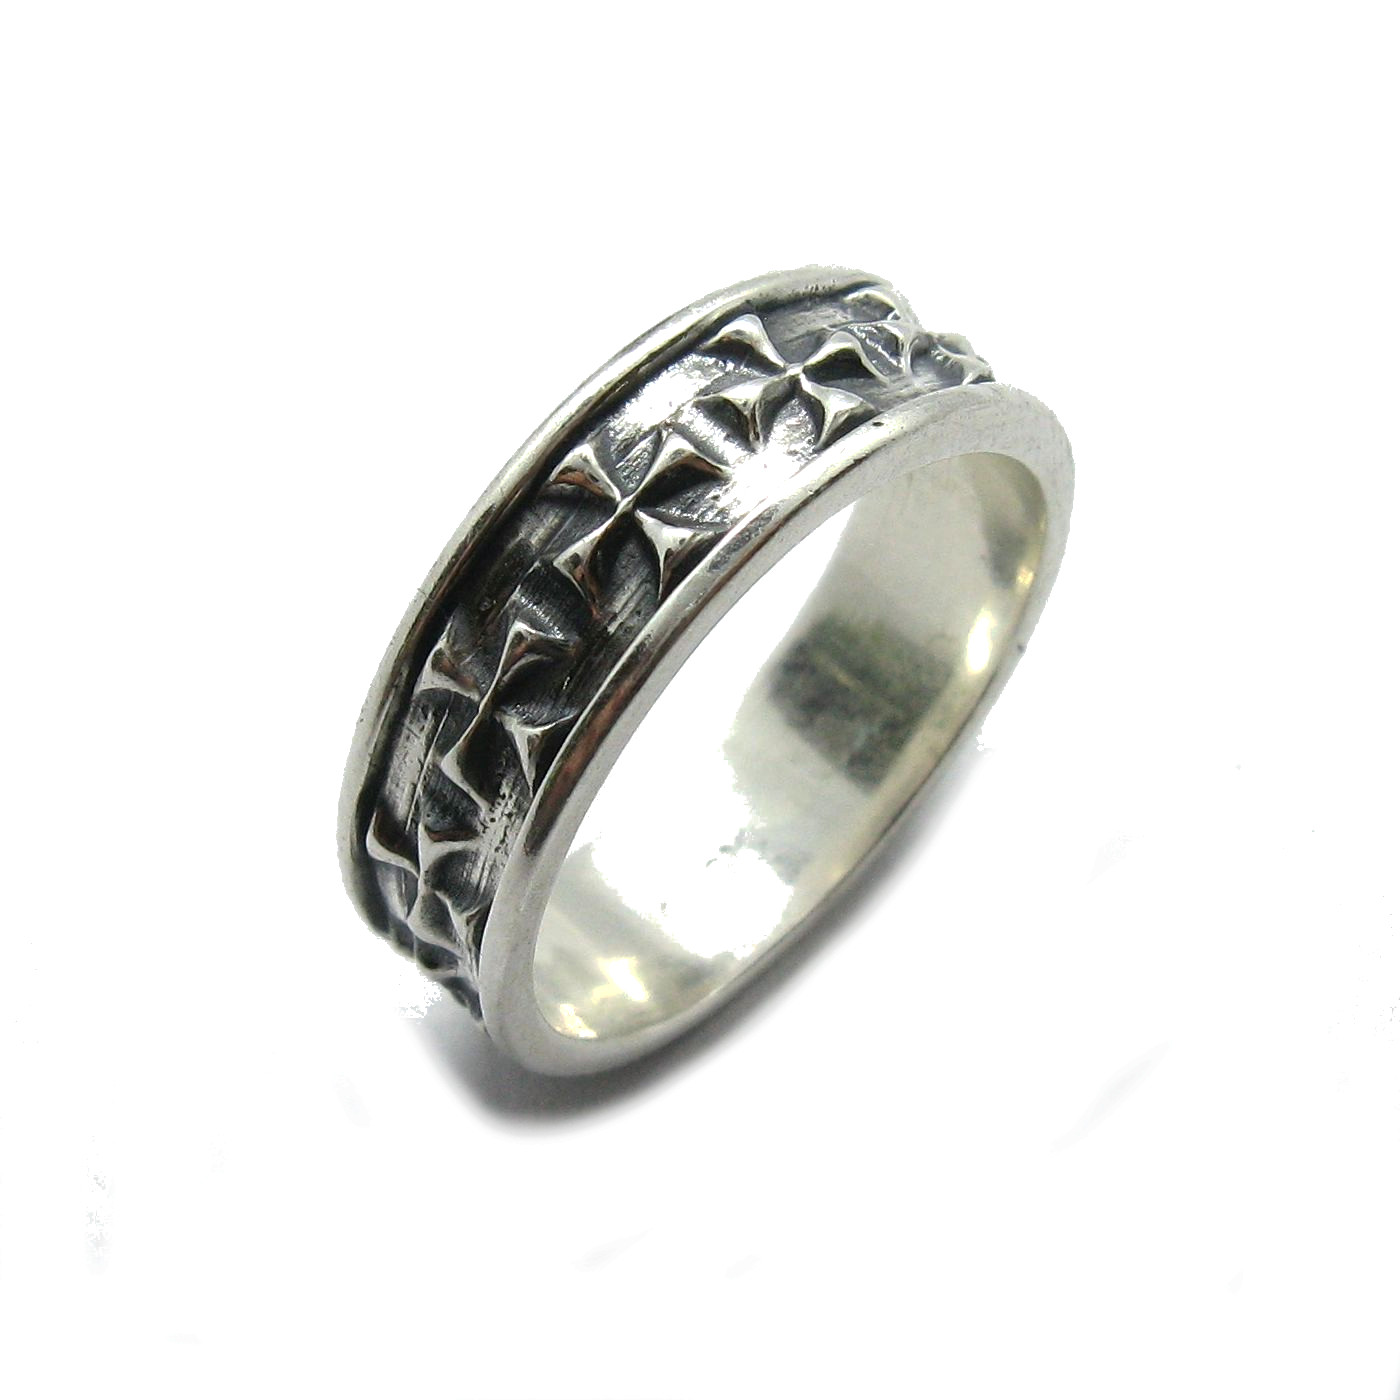 Silver ring - R001796